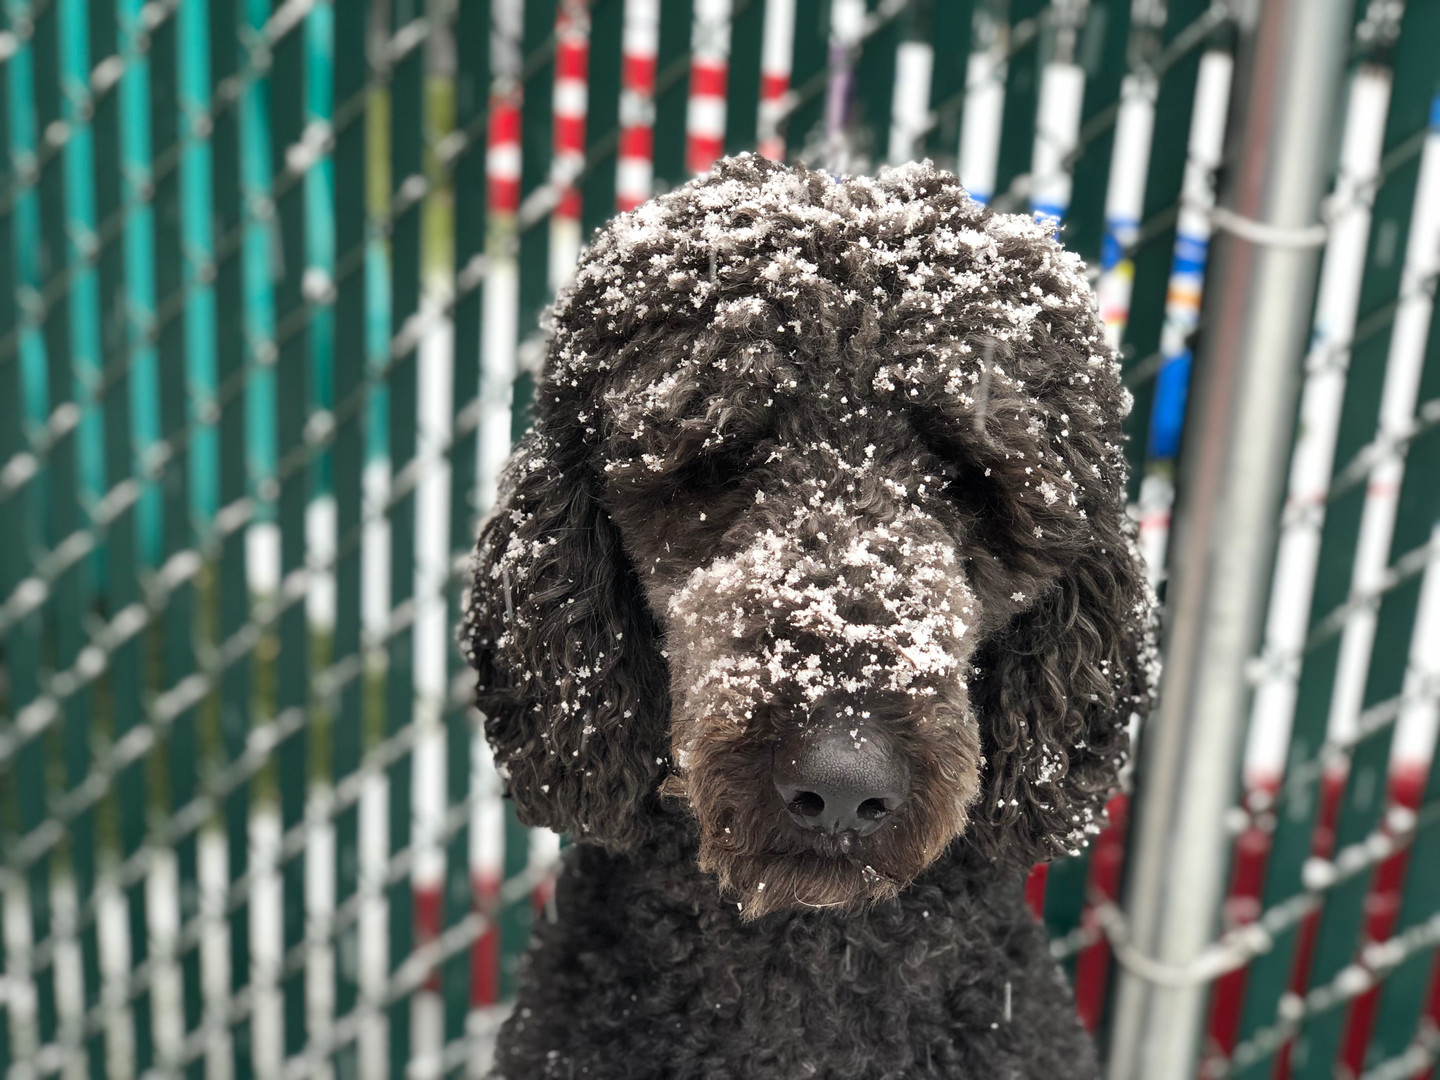 Playing in the snow at doggie day care